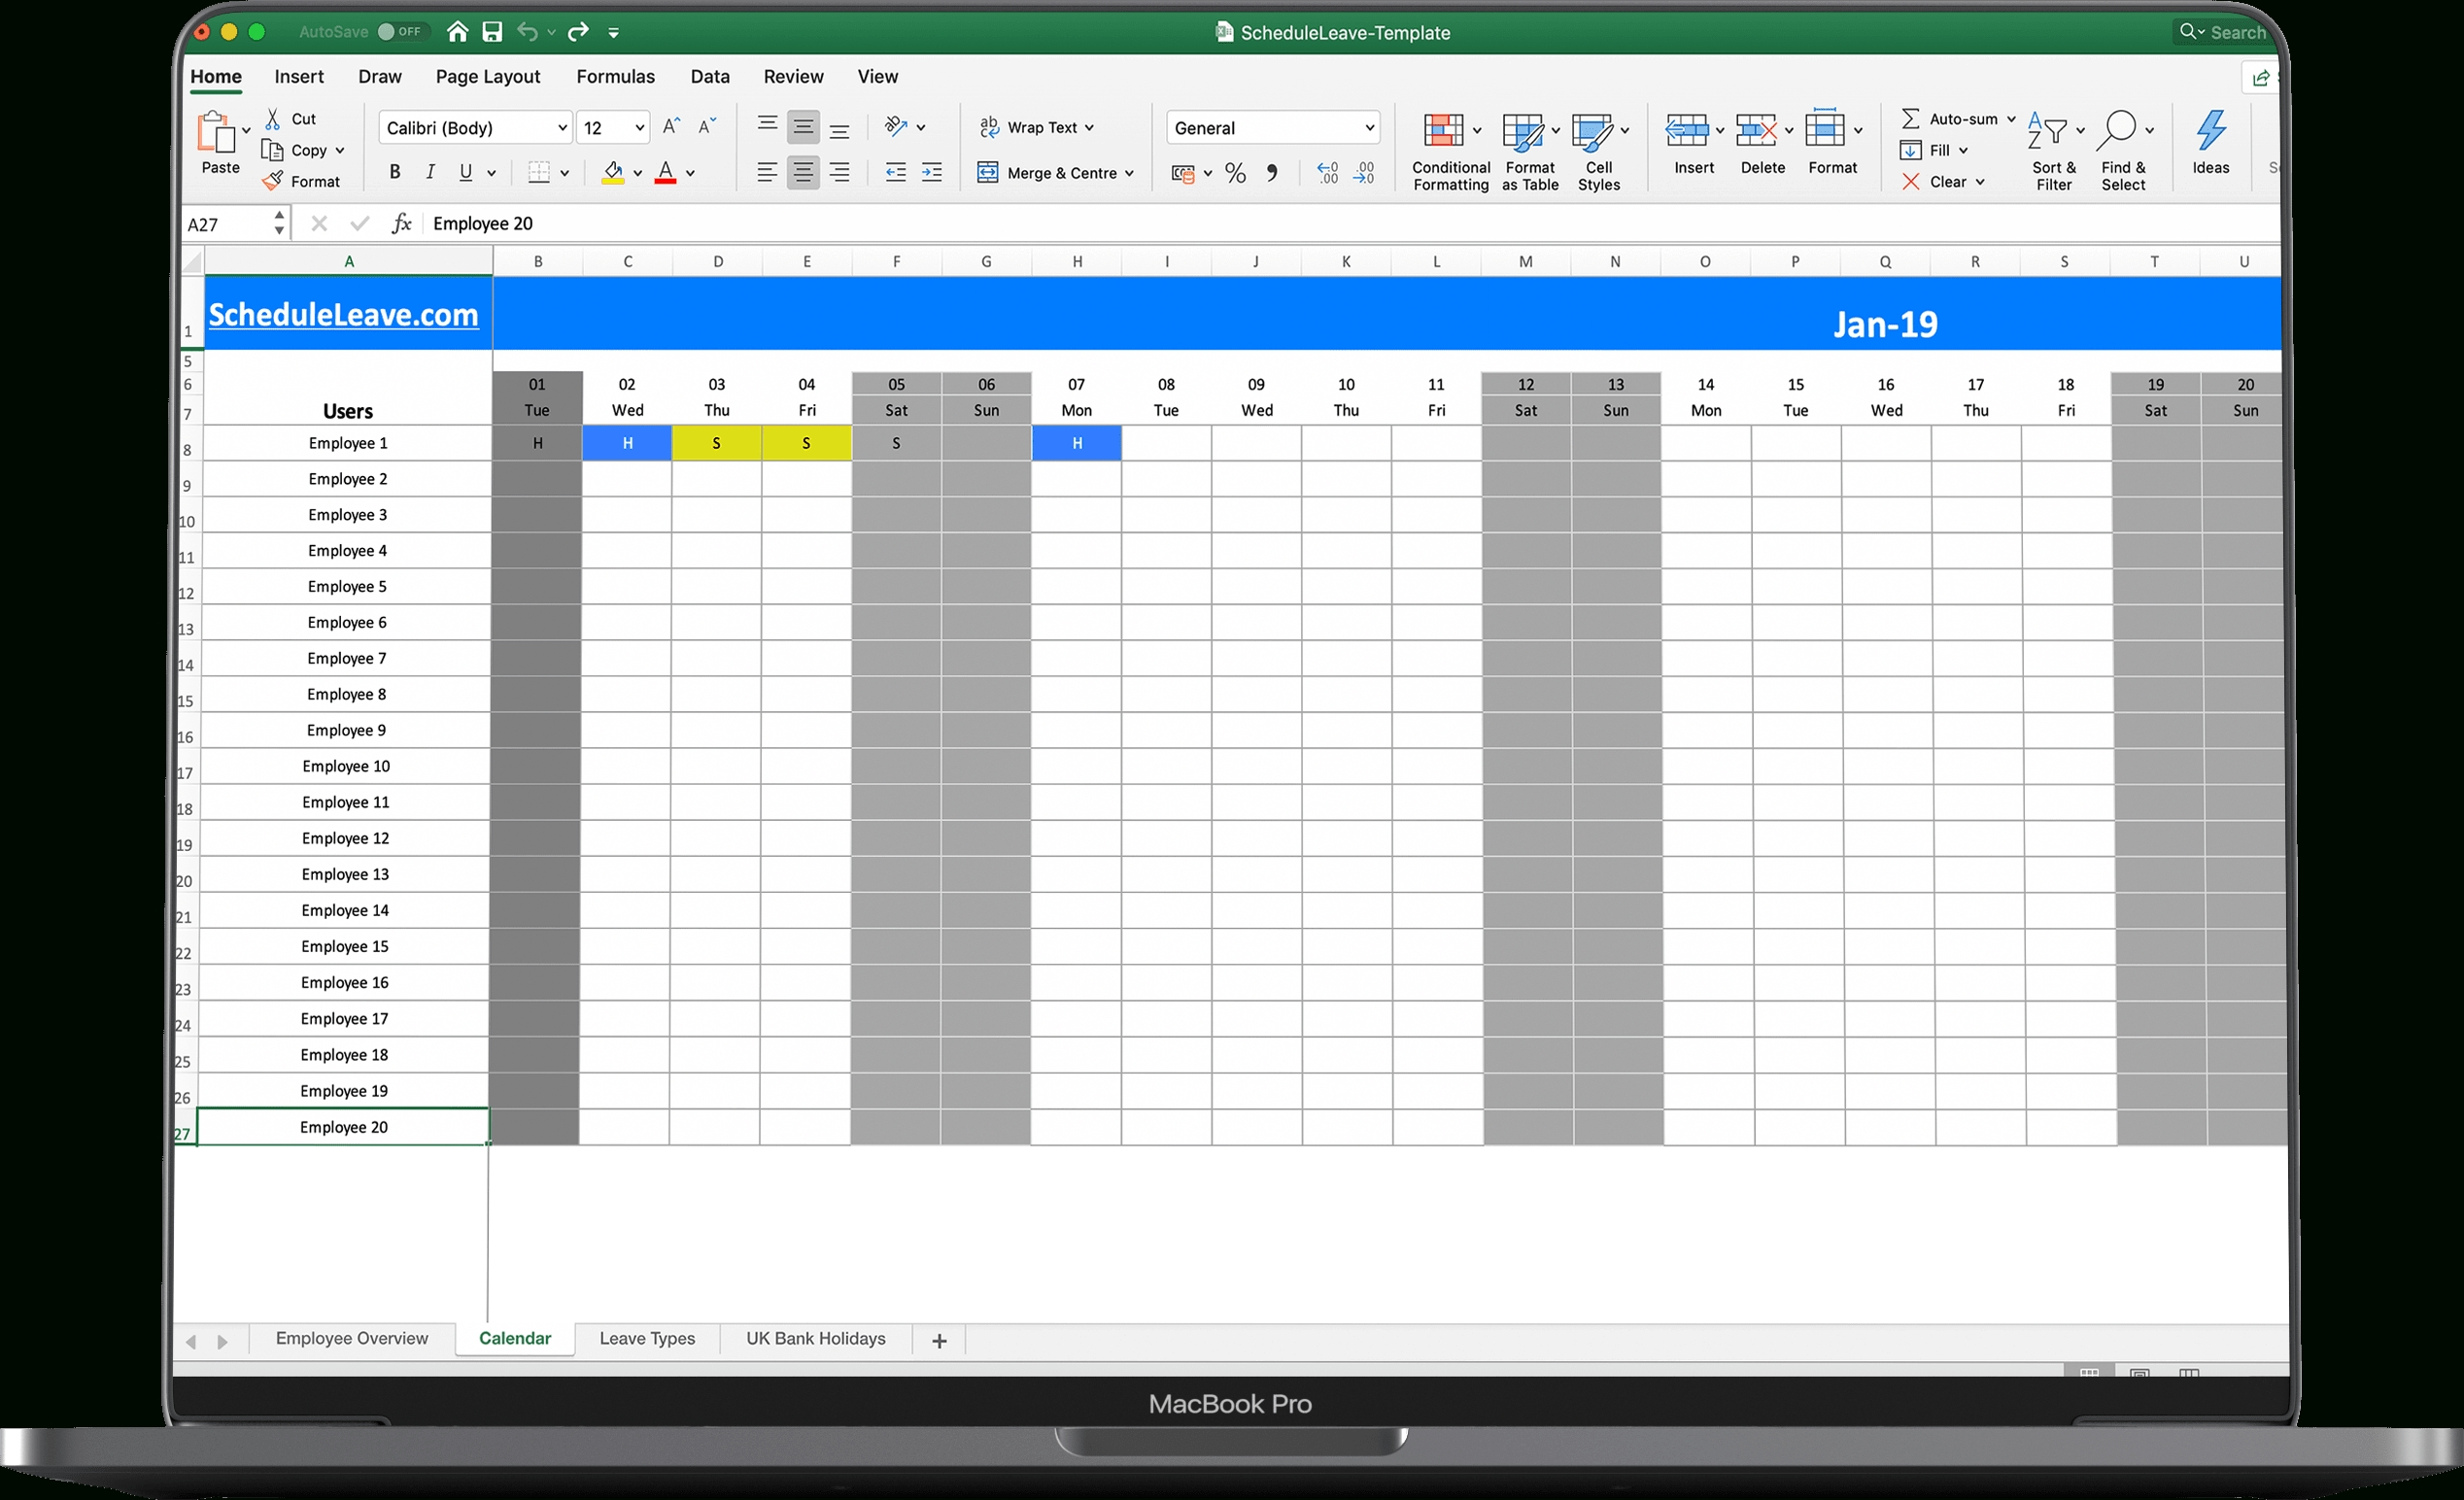 Free Excel Leave Calendar 2021 Spreadsheet Template-2021 Leave Planner Excel Template